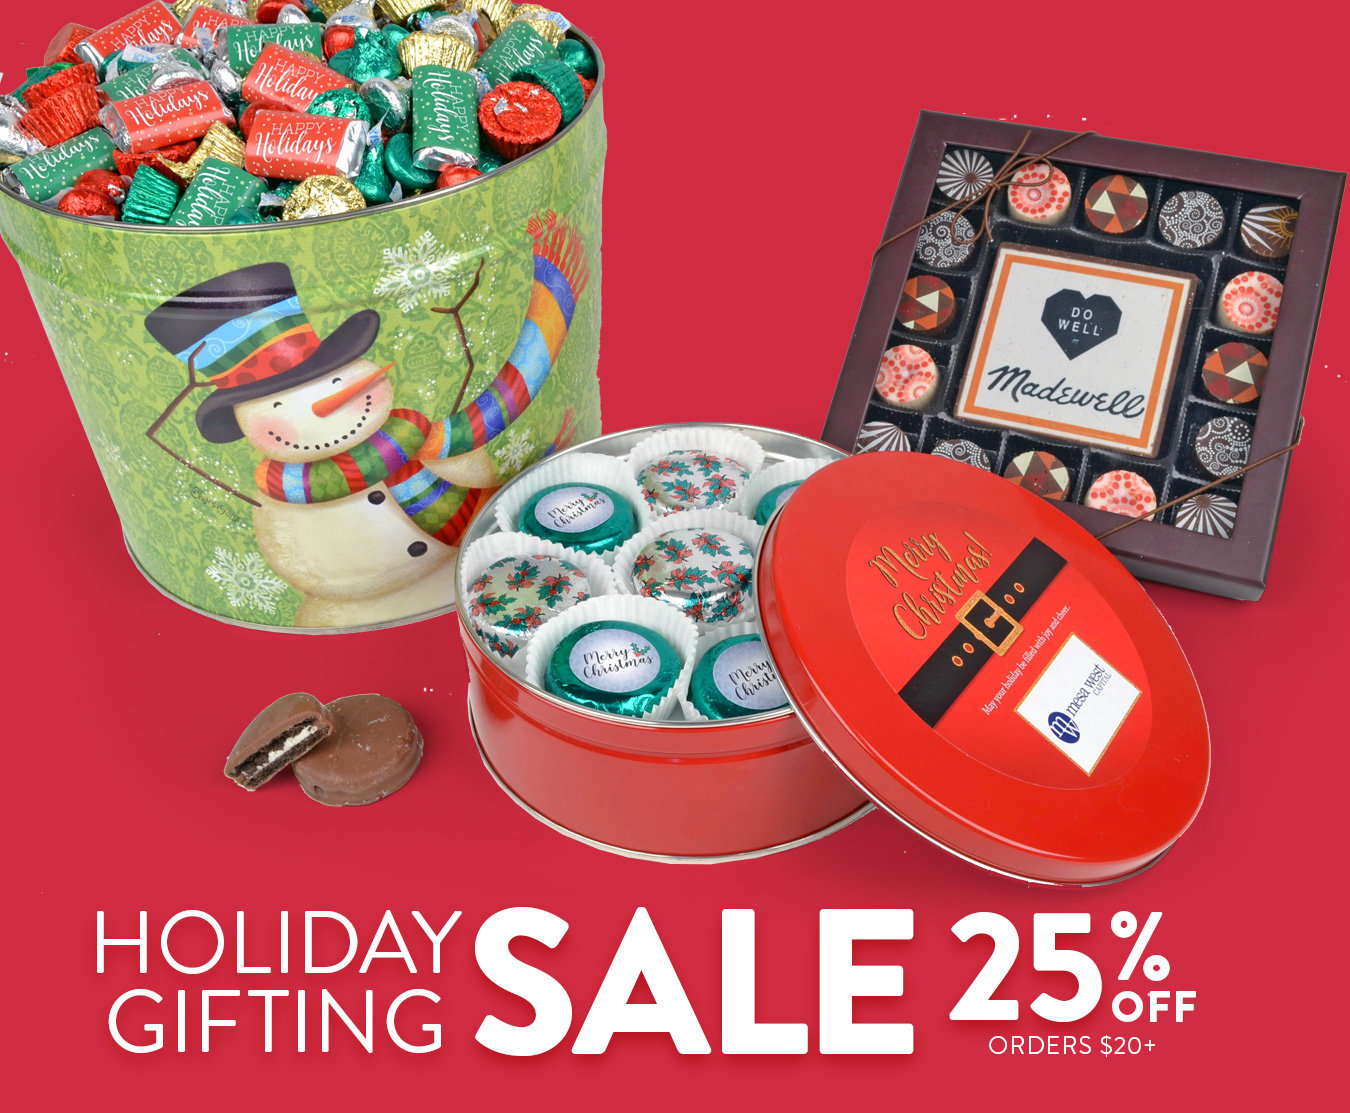 Holiday Gifting Sale 25% Off Orders $20+